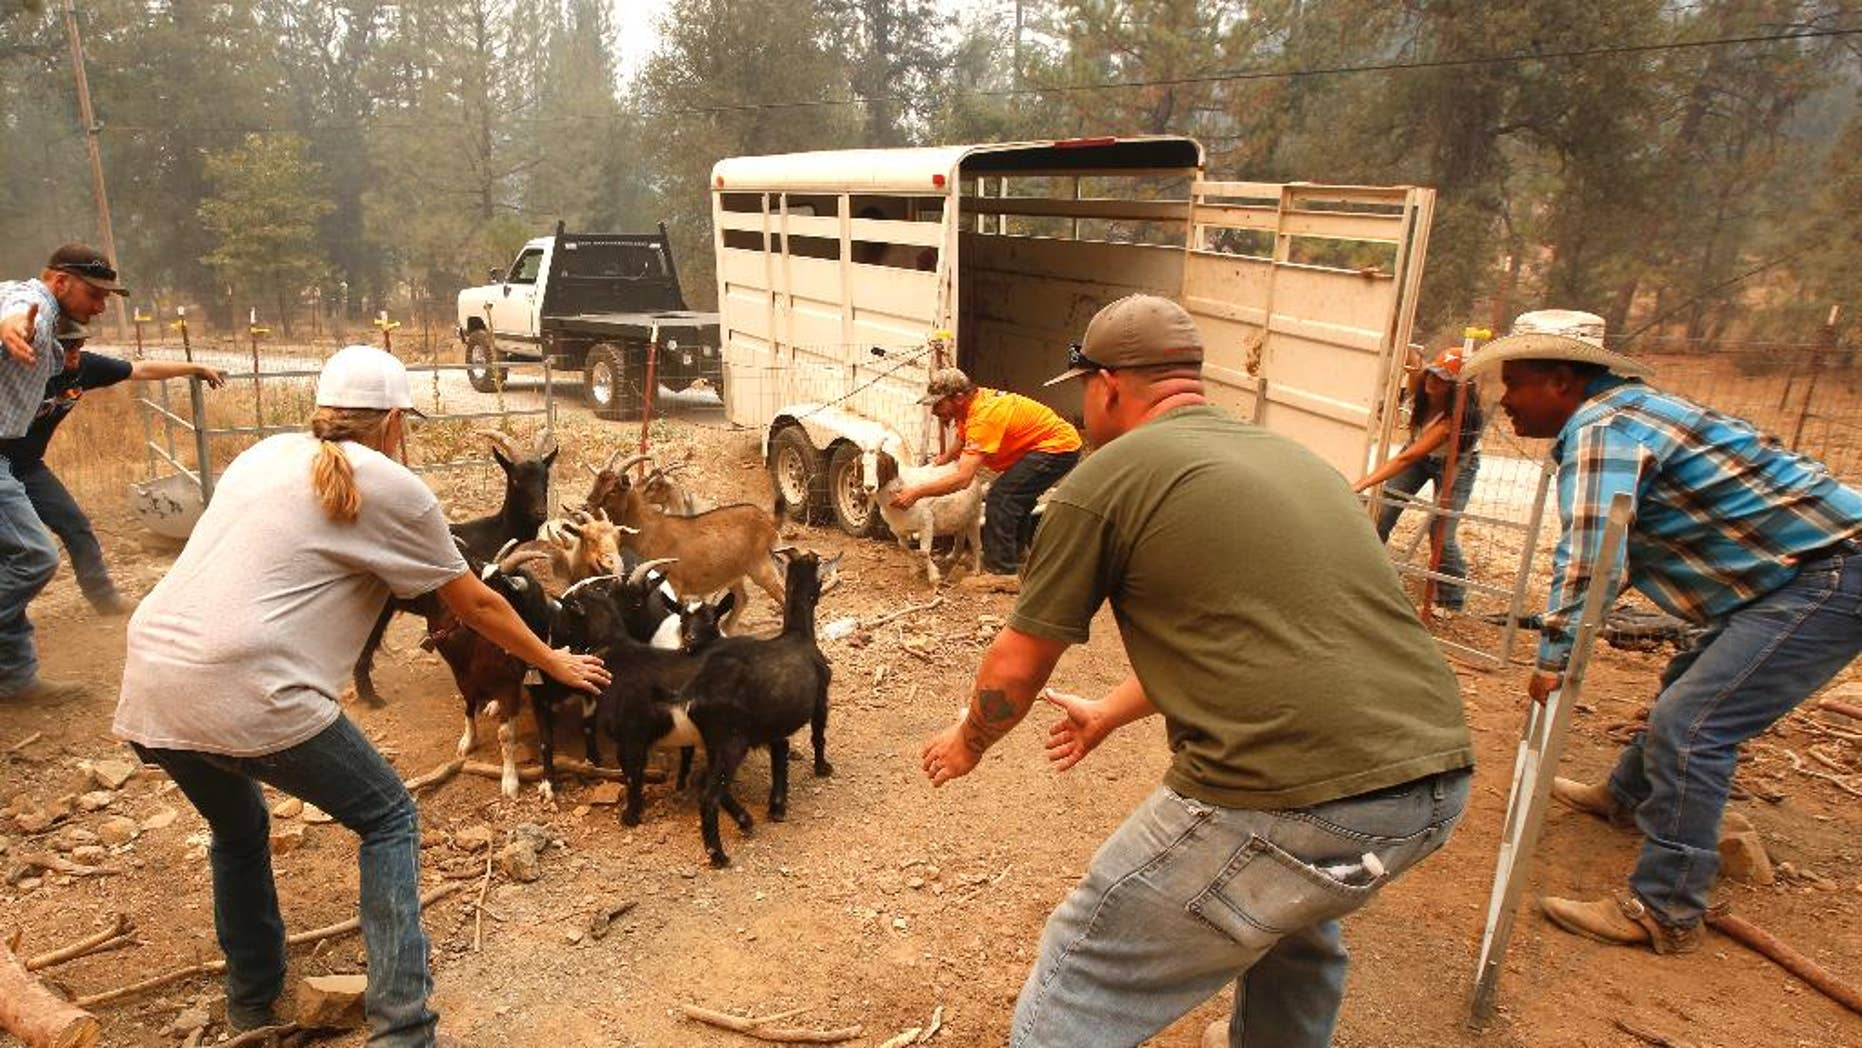 Animal rescue group volunteers herd goats from a home threatened by a fire near Railroad Flat, Calif., Sunday, Sept. 13, 2015. Two of California's fastest-burning wildfires in decades overtook several Northern California towns, destroying homes and sending residents fleeing. (AP Photo/Rich Pedroncelli)